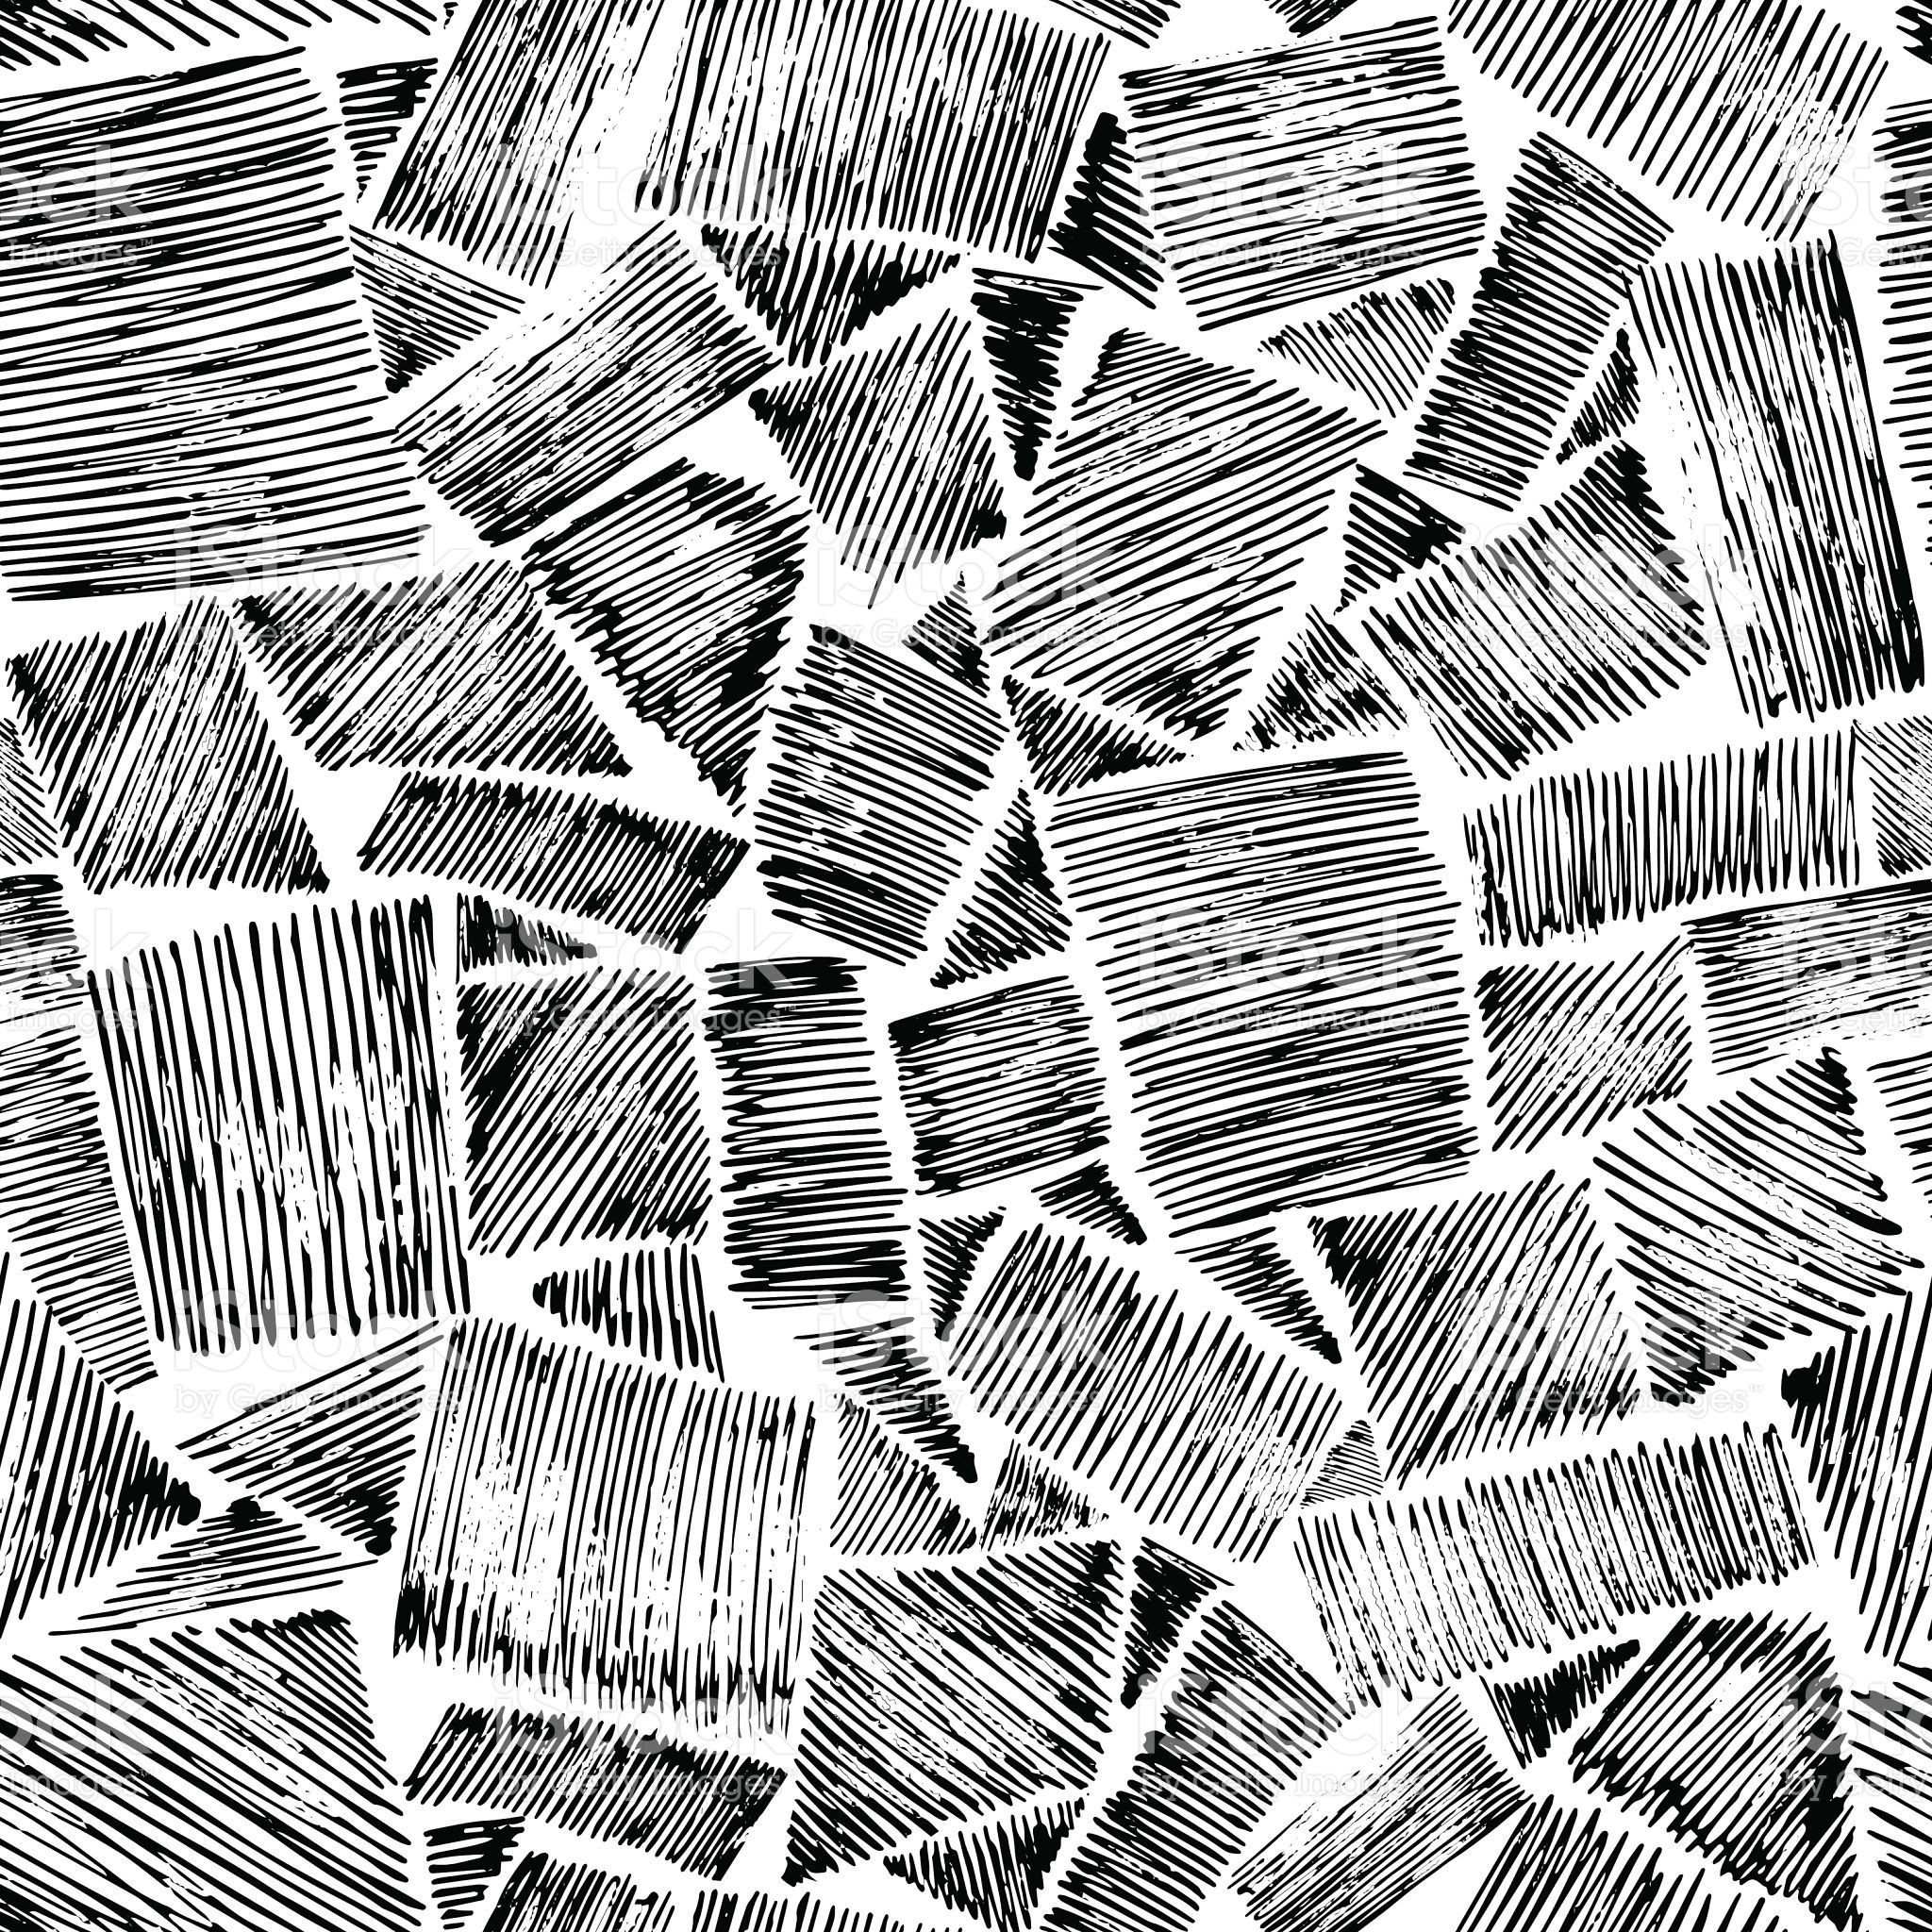 Hand Drawn Backgrounds Vector Illustration Rough Hatching